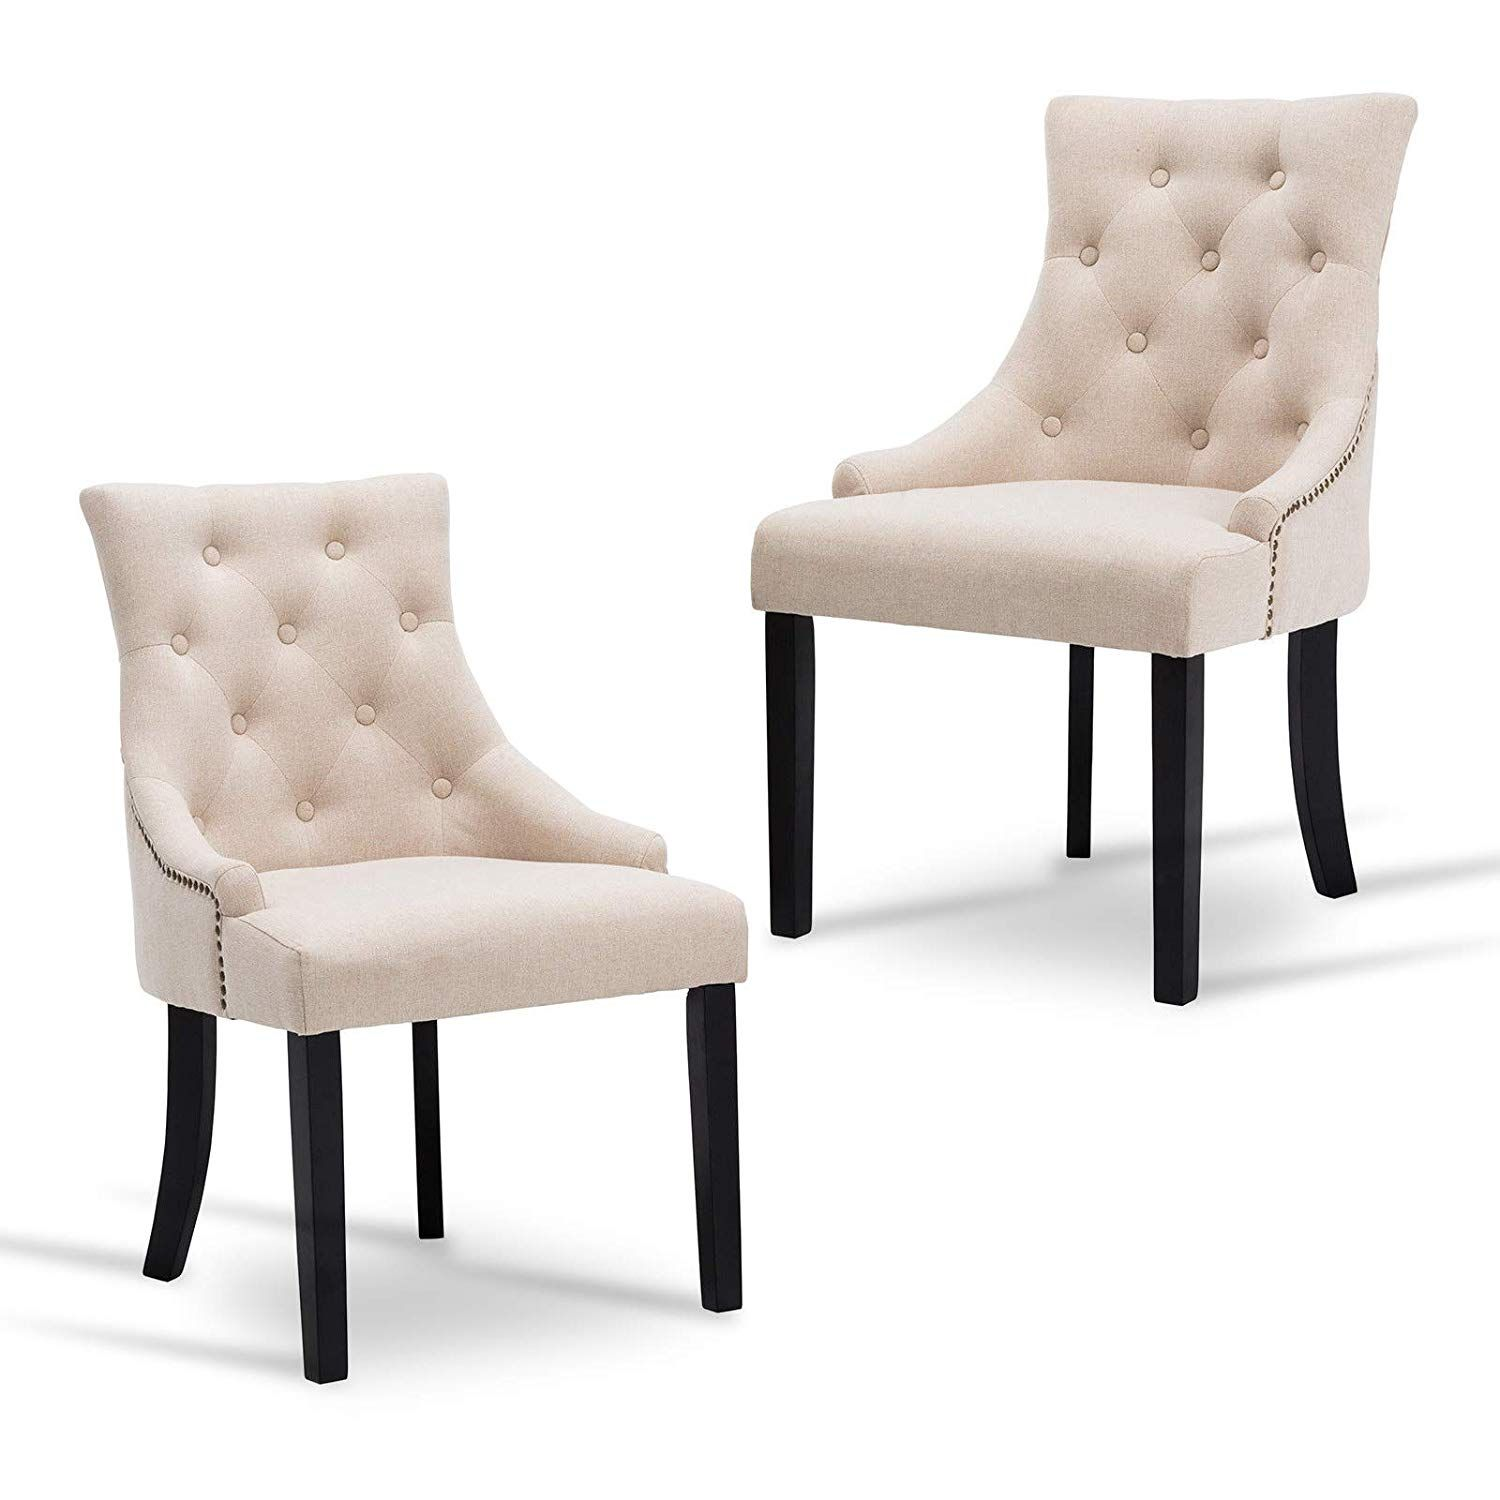 Best Hou Hai Elegant Set Of 2 Beige Fabric Accent Dining Chairs 400 x 300